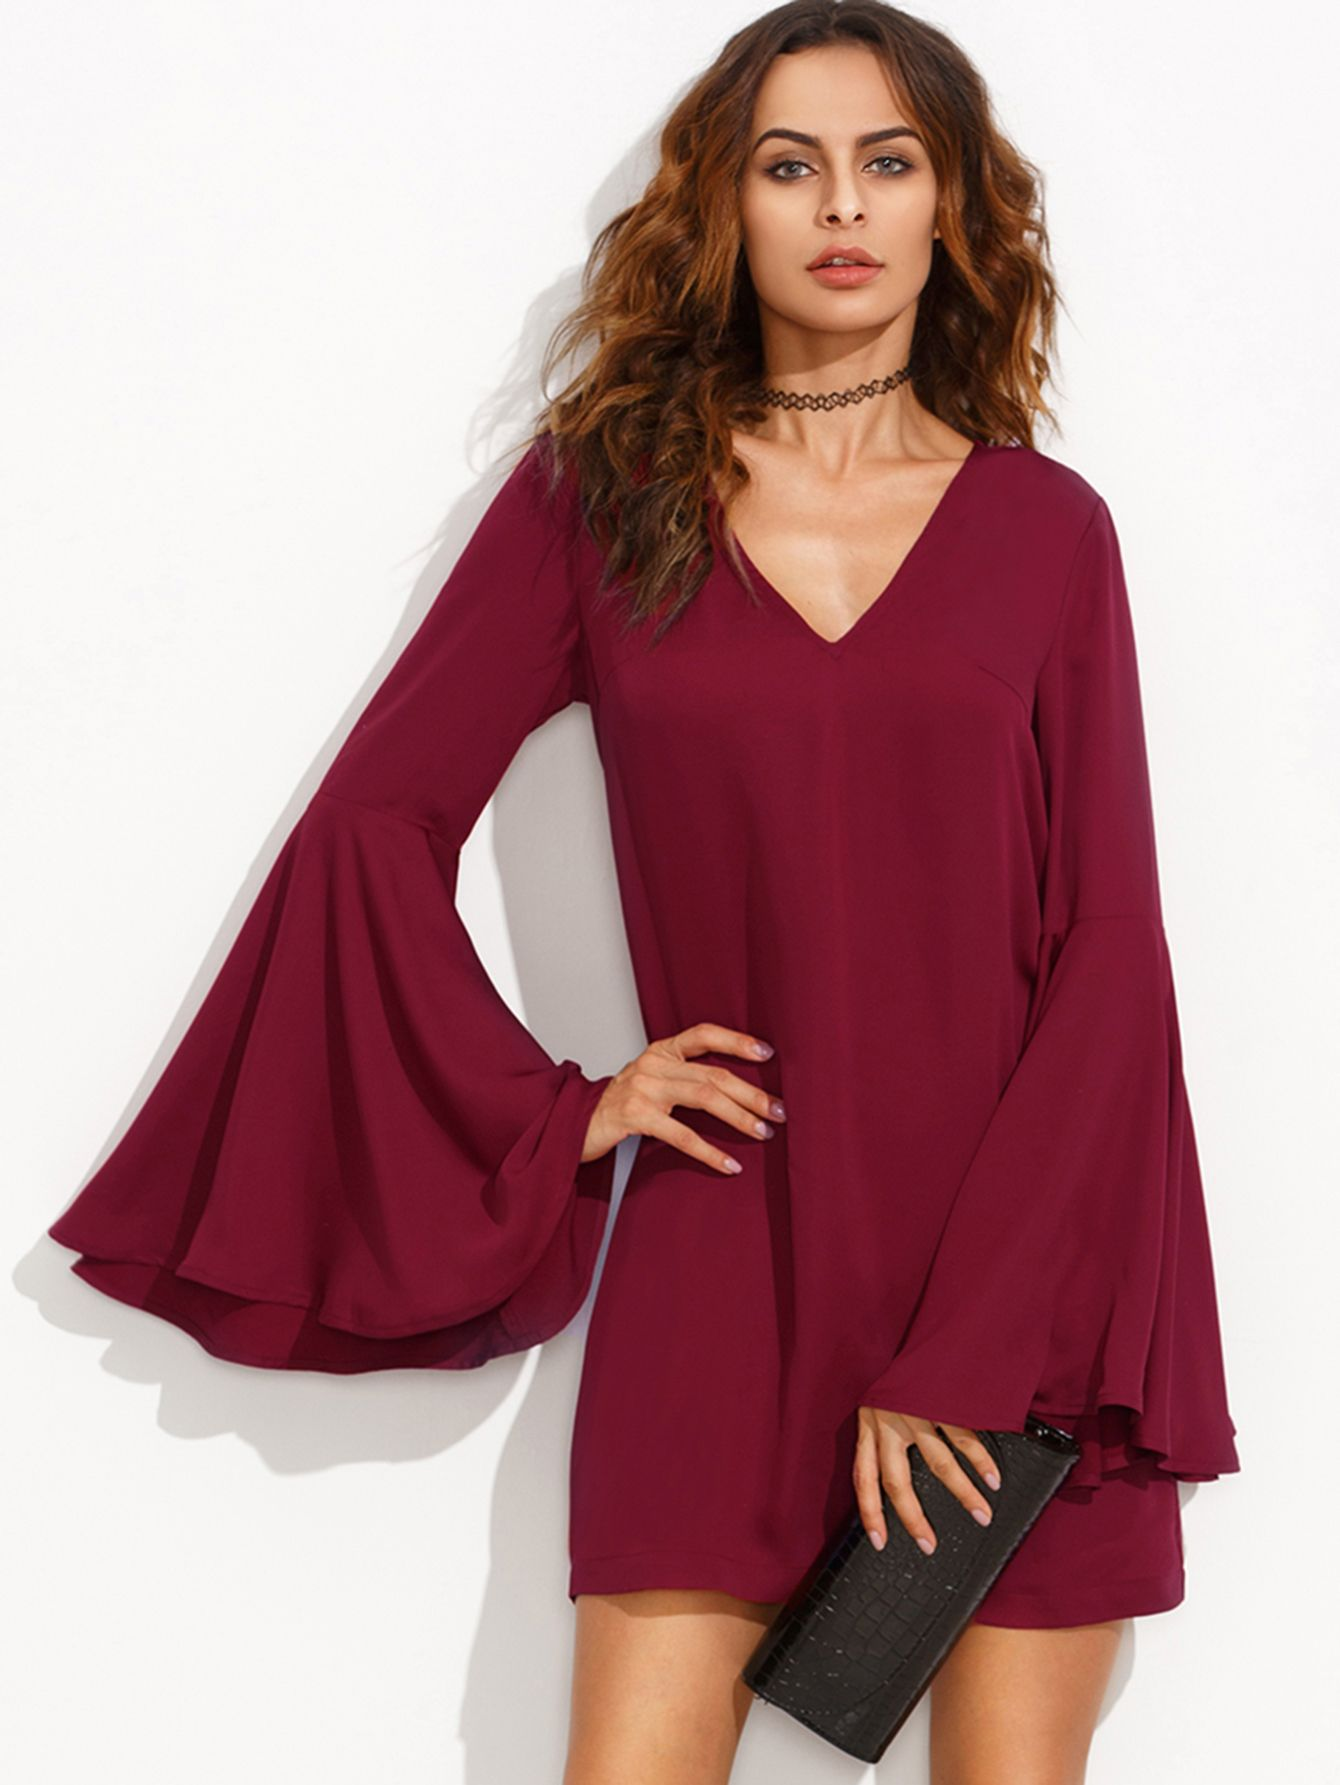 a1e595ea90d5 Online shopping for Burgundy V Neck Ruffle Long Sleeve Shift Dress from a  great selection of women s fashion clothing   more at MakeMeChic.COM.